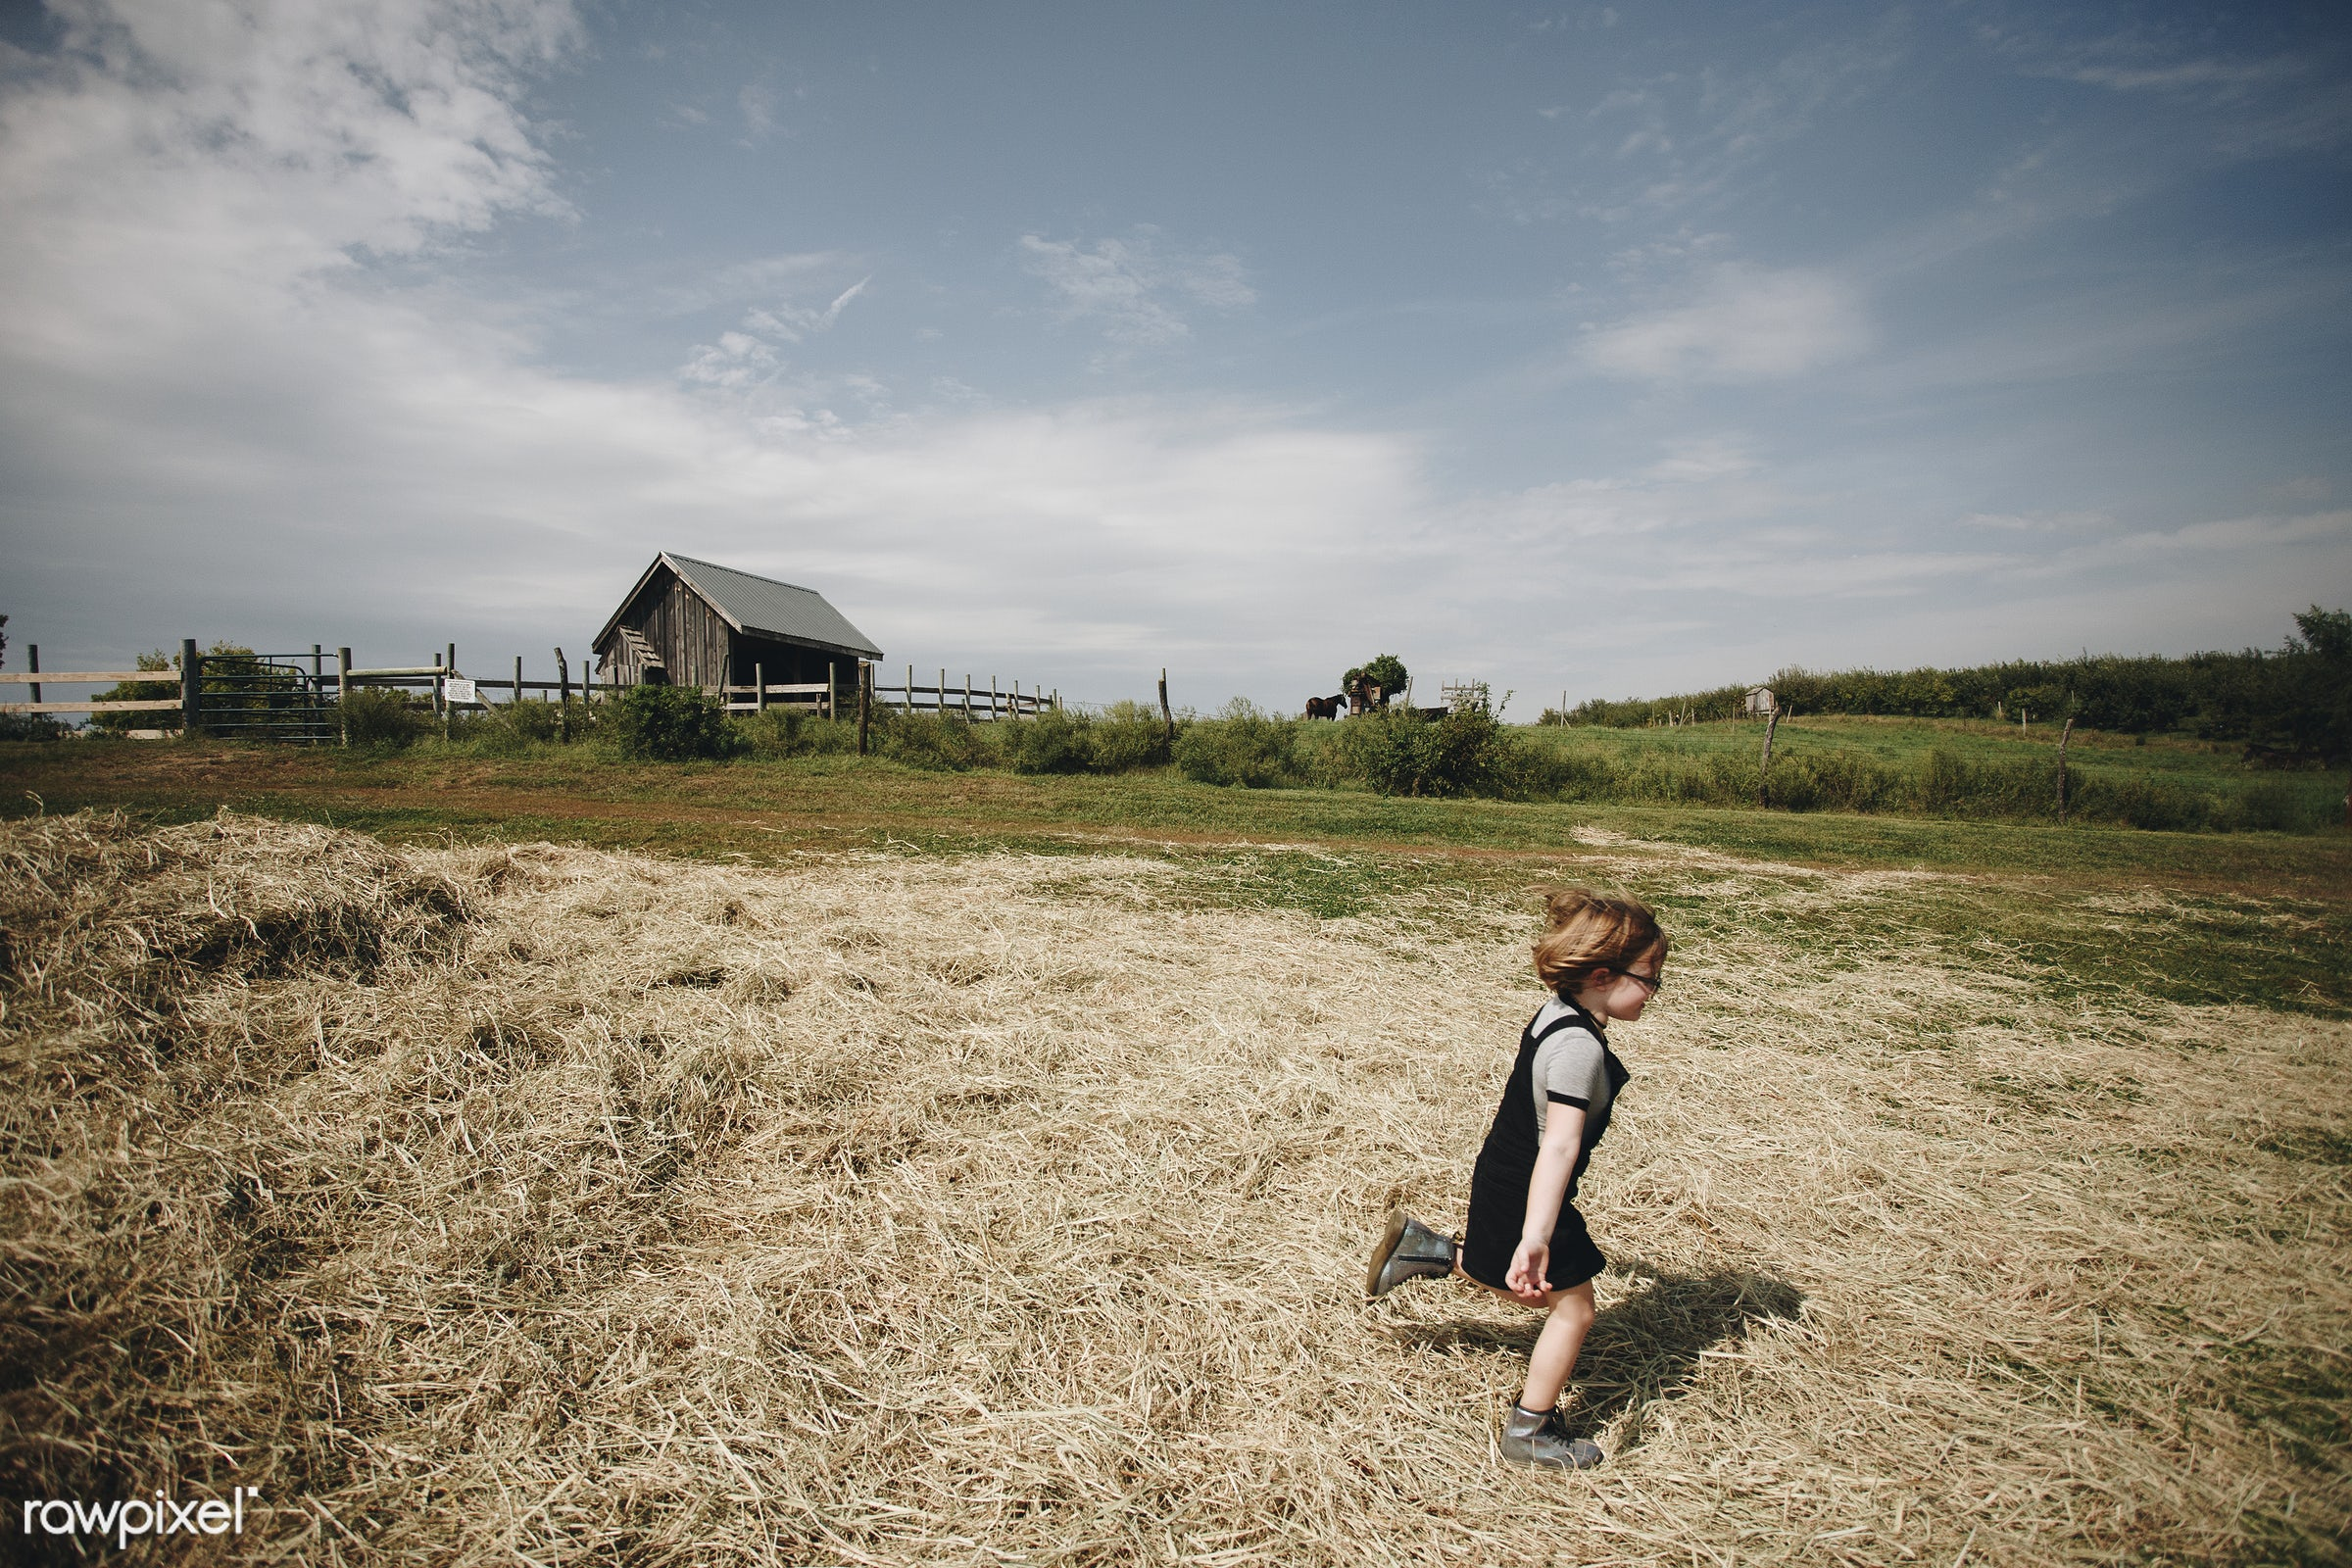 Little girl playing in a farm - alone, america, american, canada, canadian, cheerful, child, countryside, daughter, european...